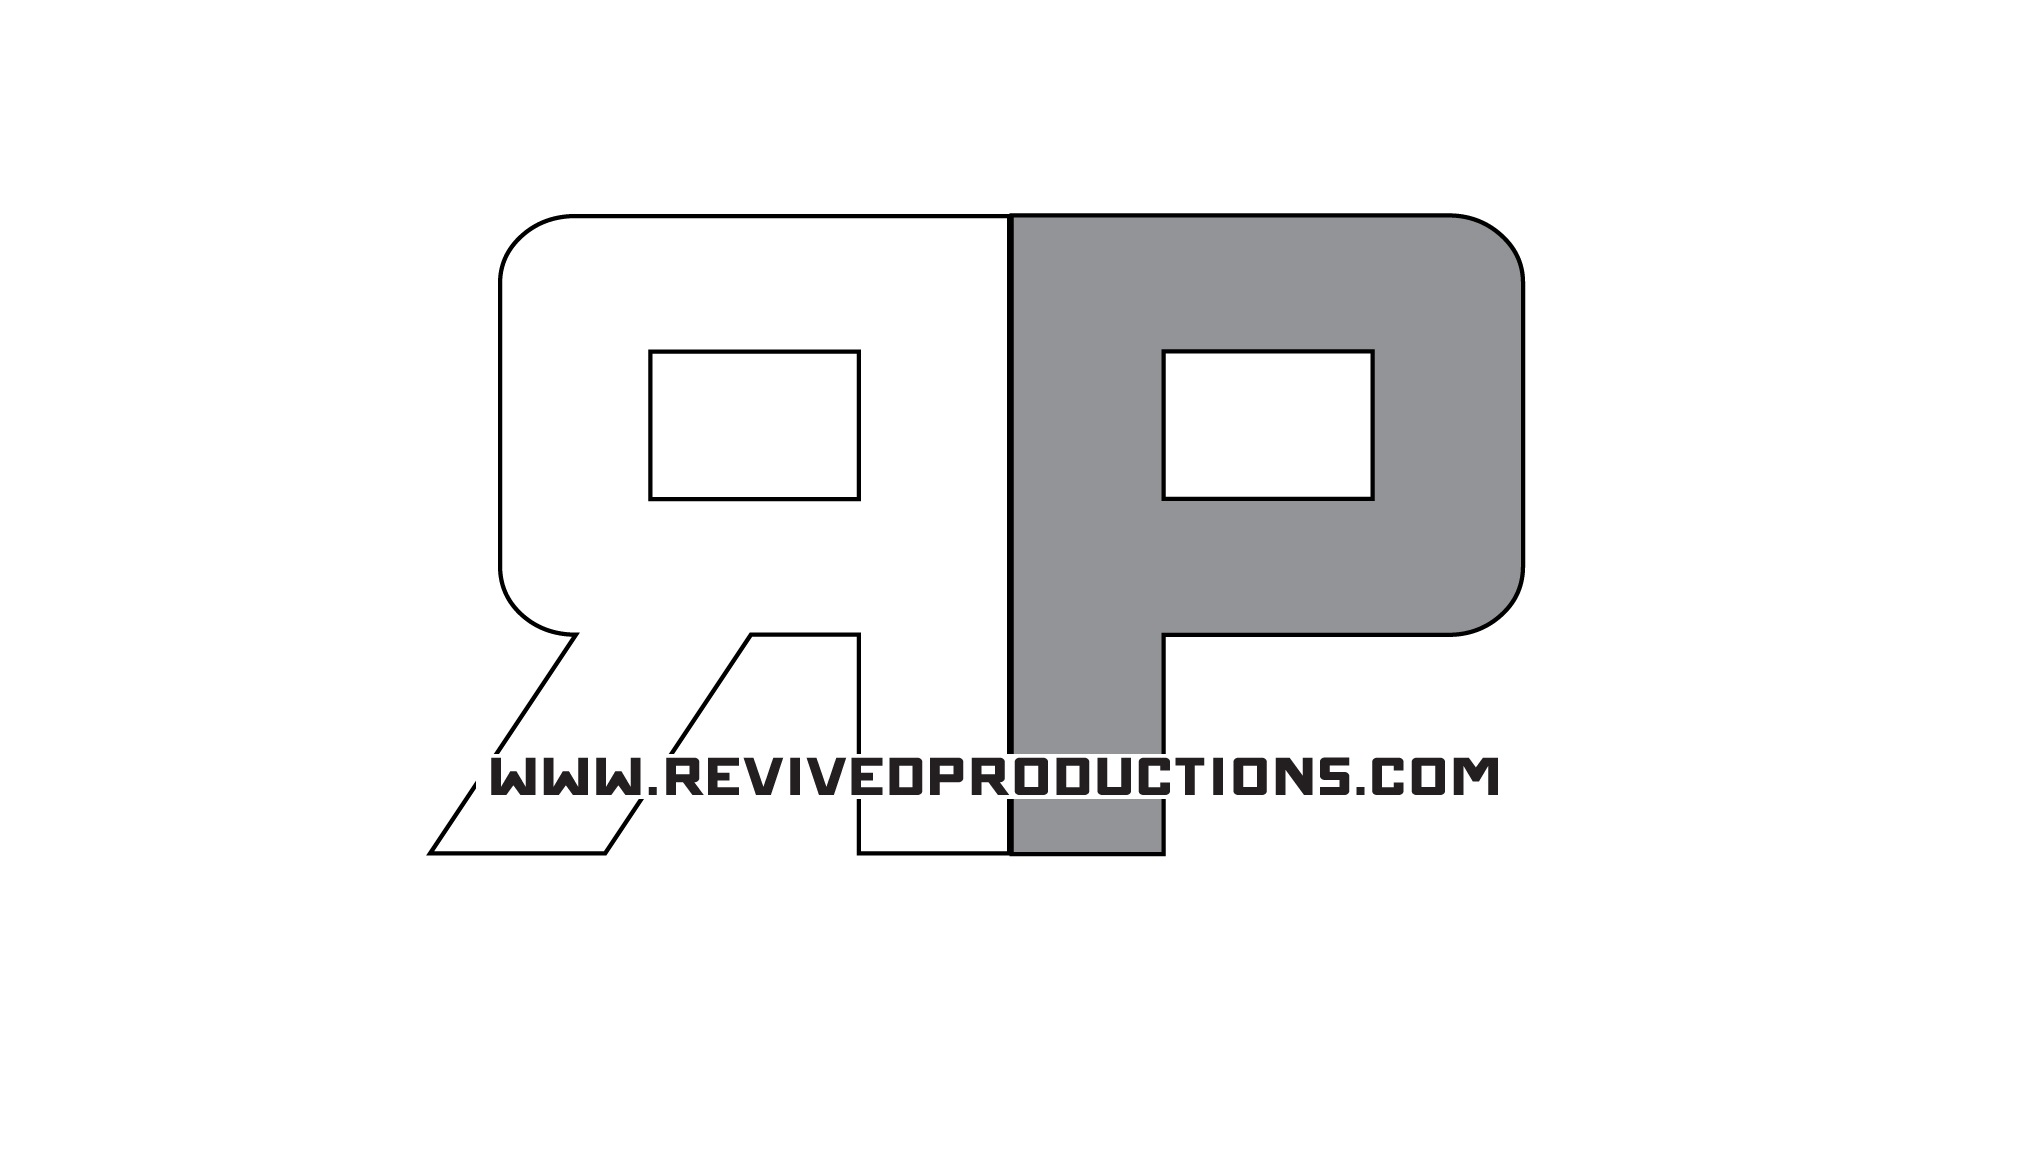 Revived Productions